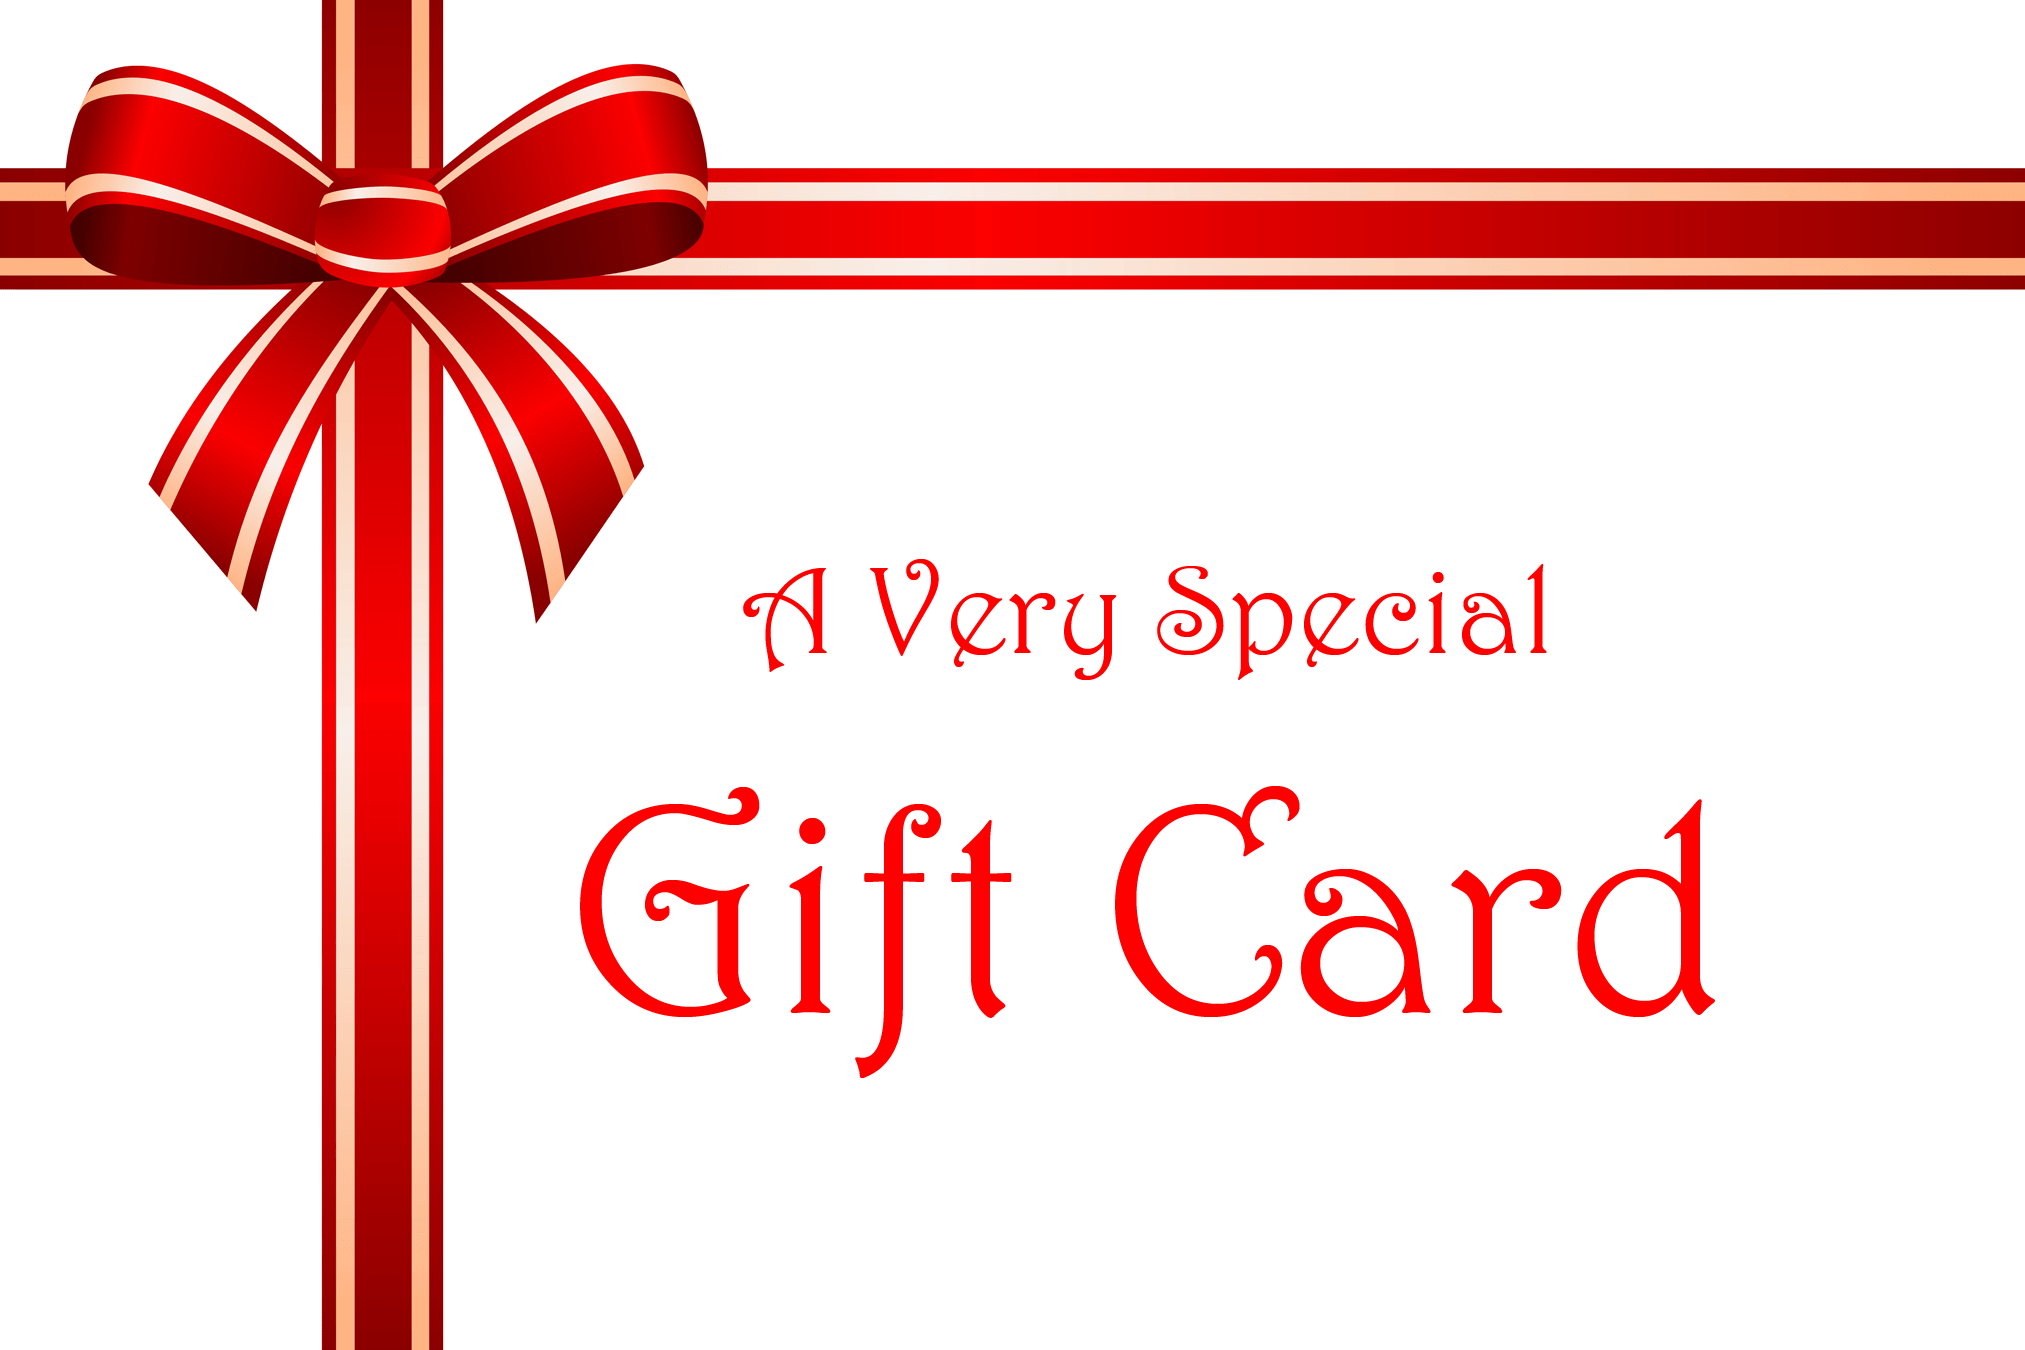 Gift Card Clipart ClipArt Best